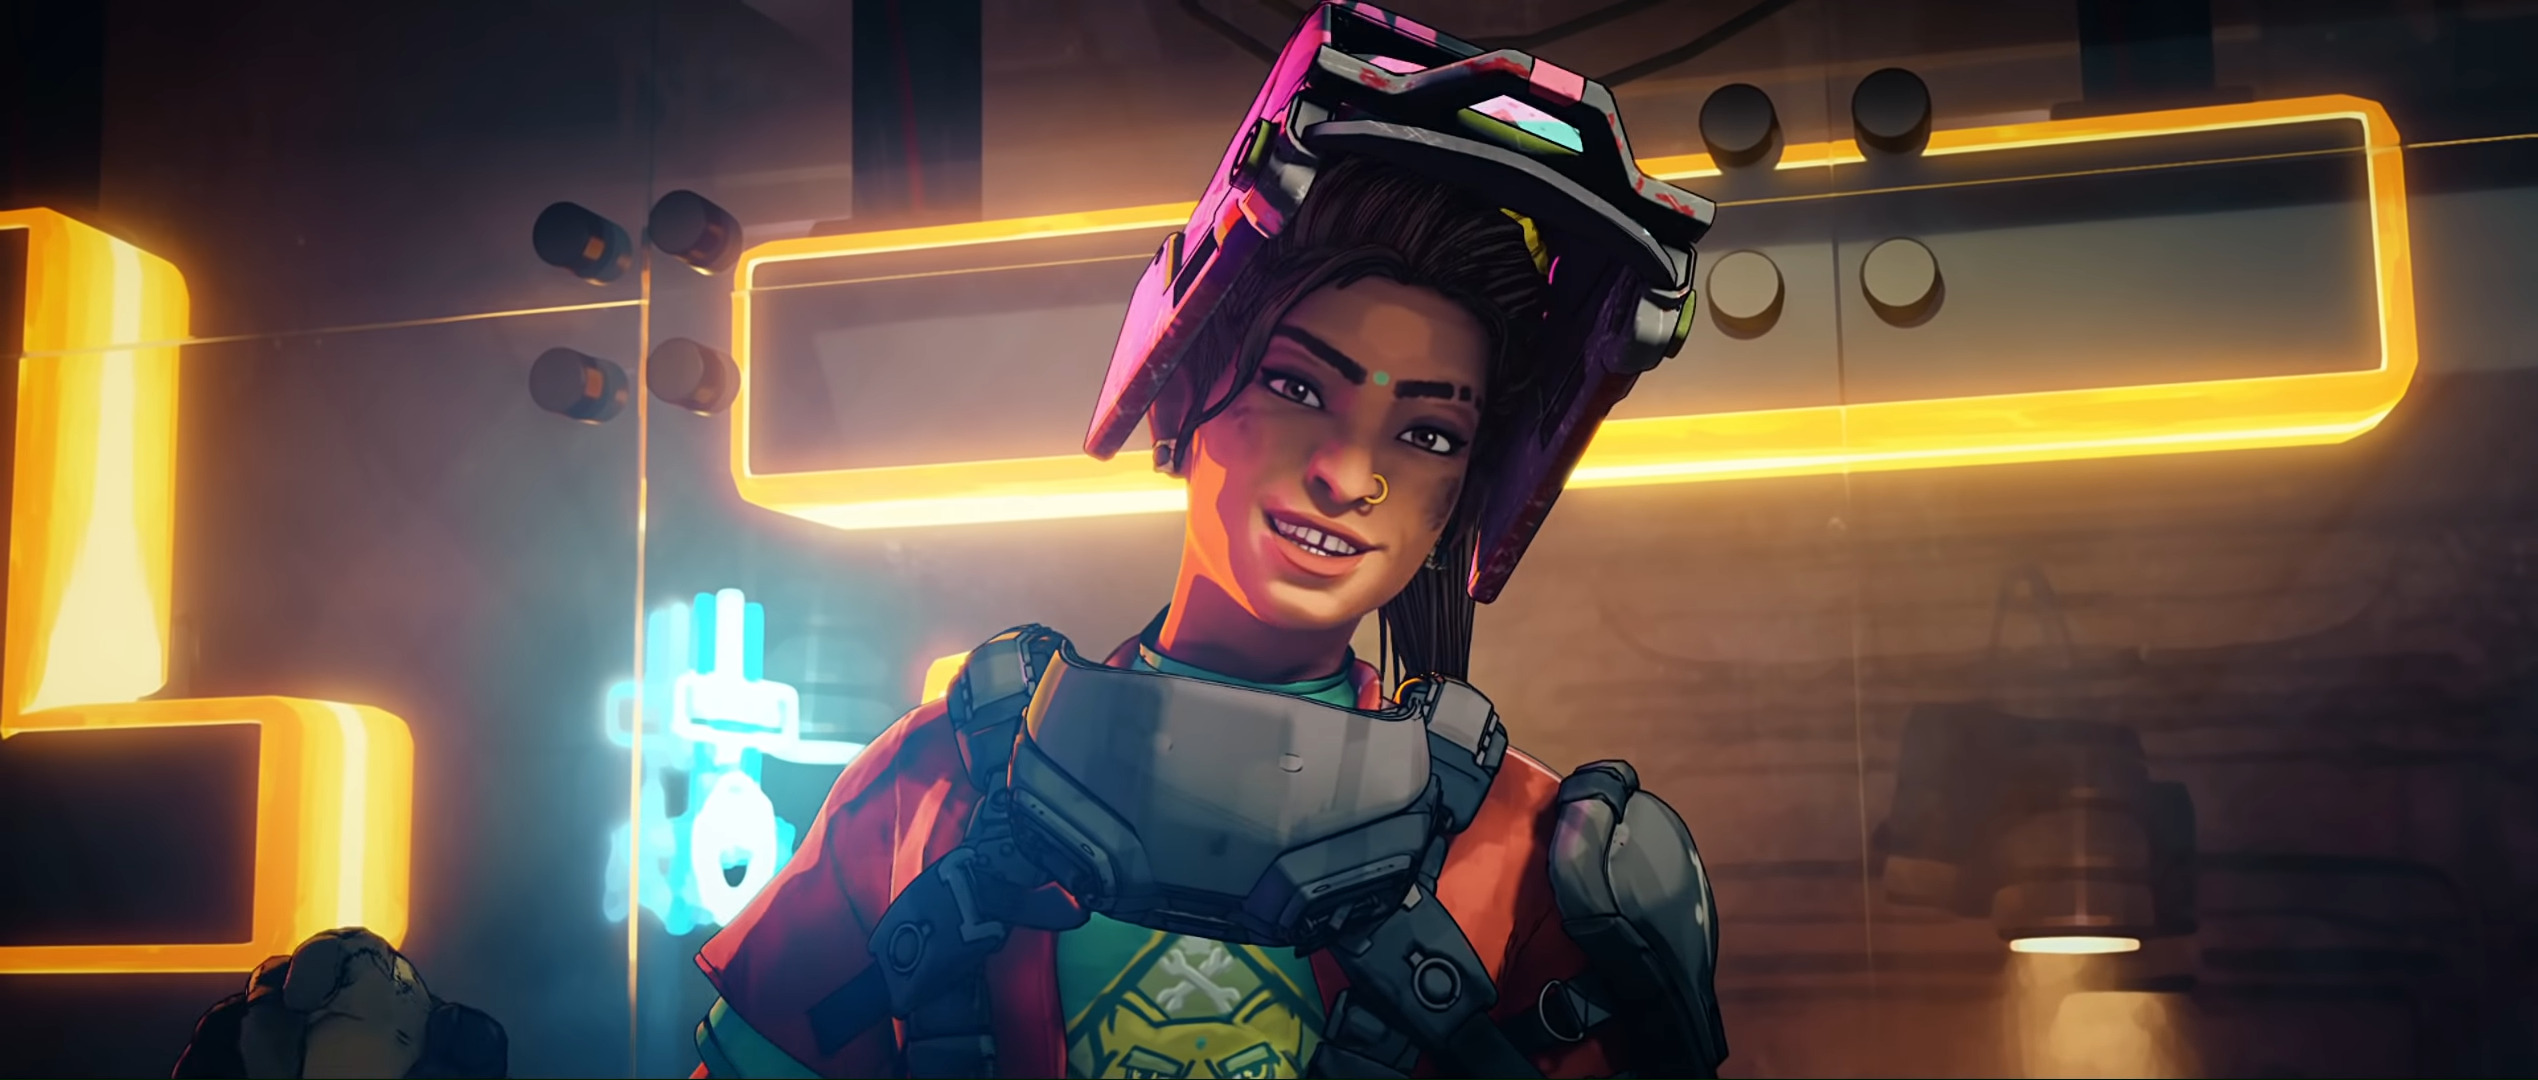 Apex Legends New Legend Is Announced, And Other Hints And Teasers From Season 6 Trailer